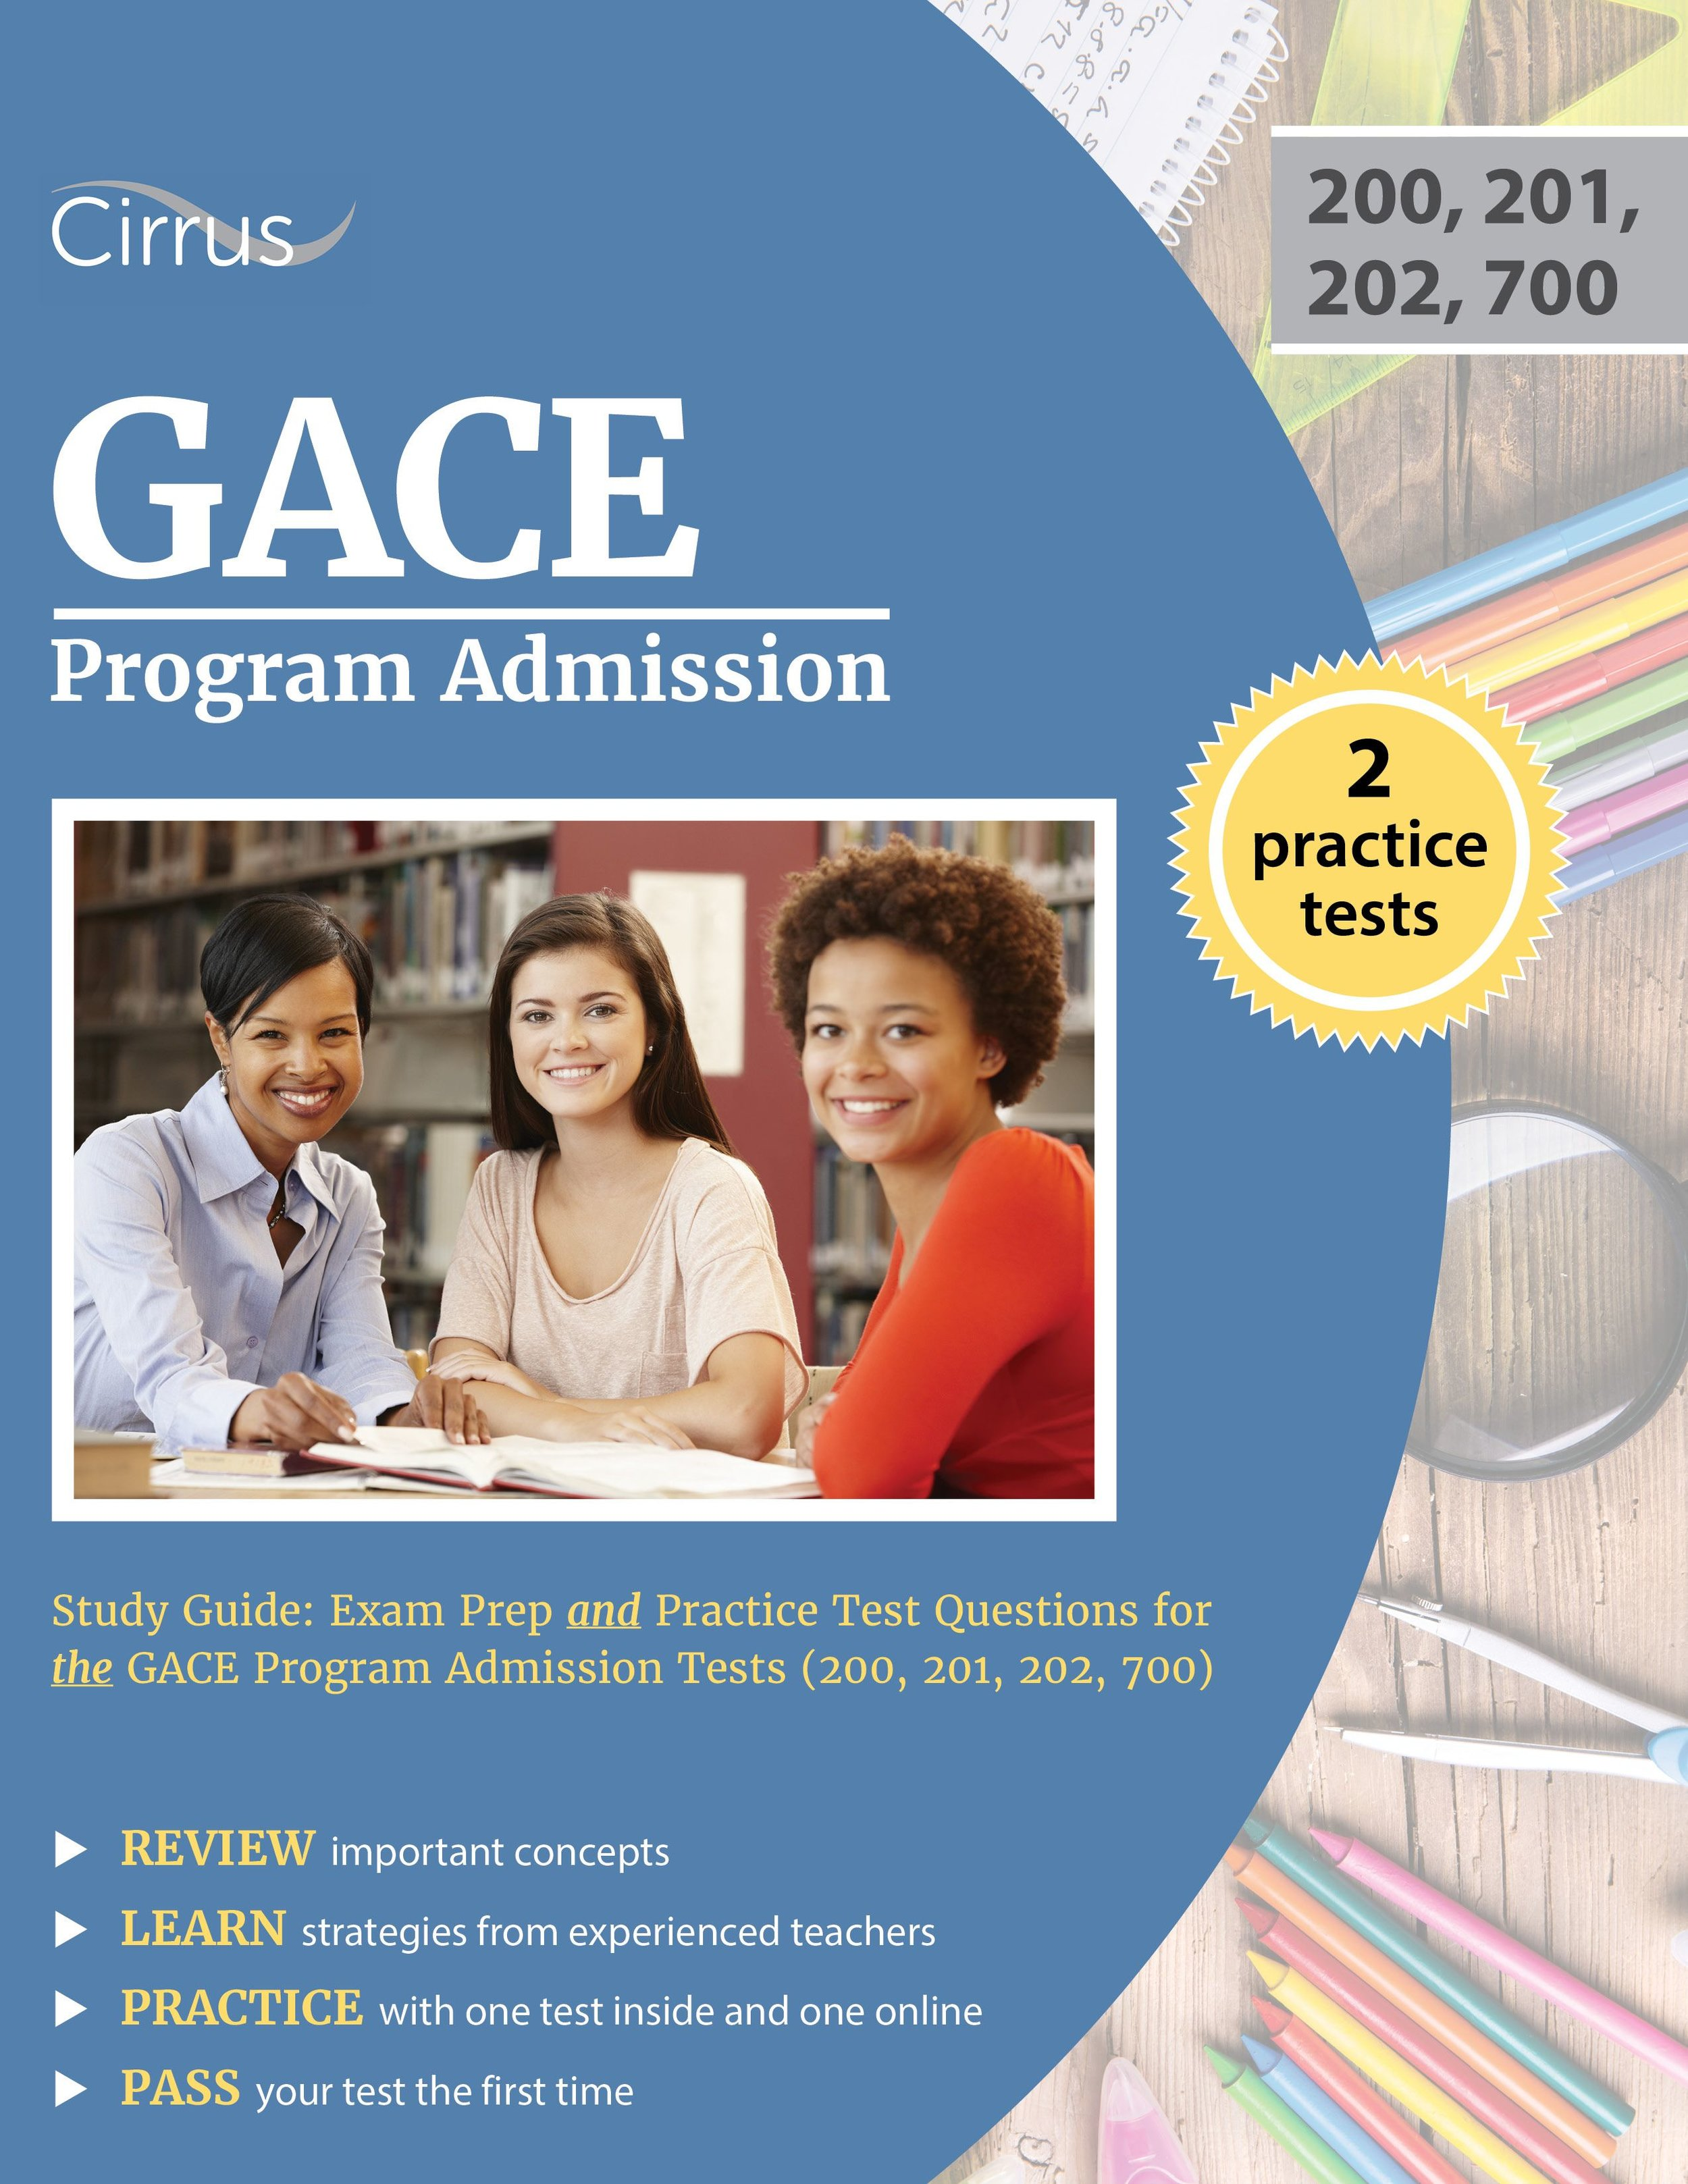 GACE Program Admission (200, 201, 202, 700) Study Guide